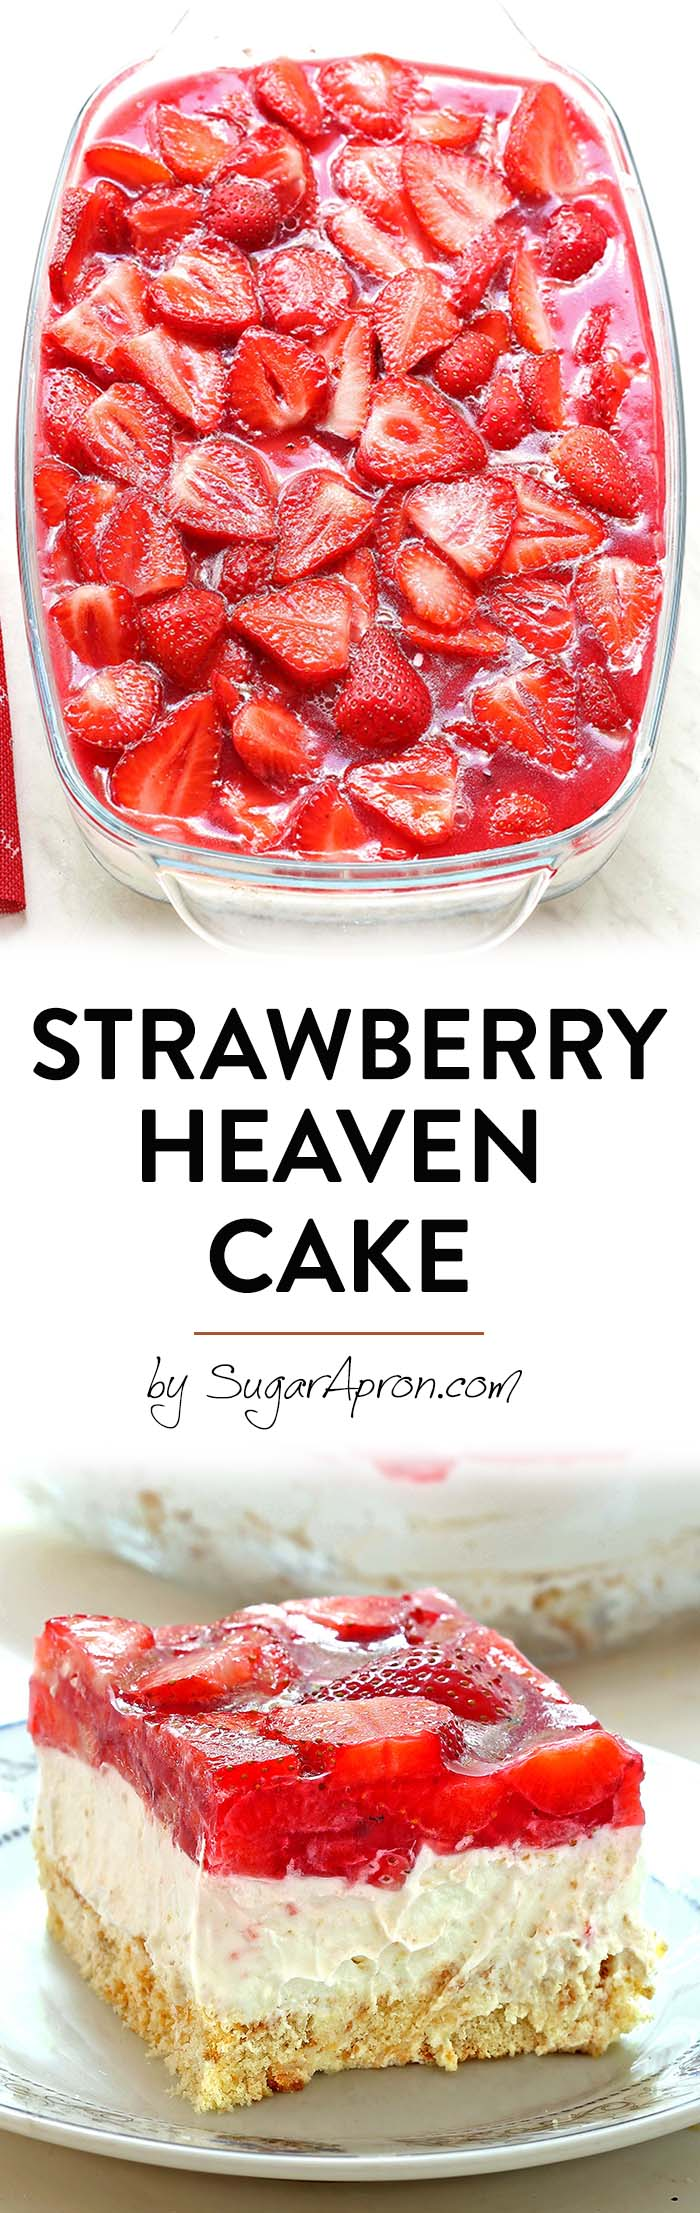 a quick and easy dessert that you can take on your next picnic or to your family reunion or BBQ.